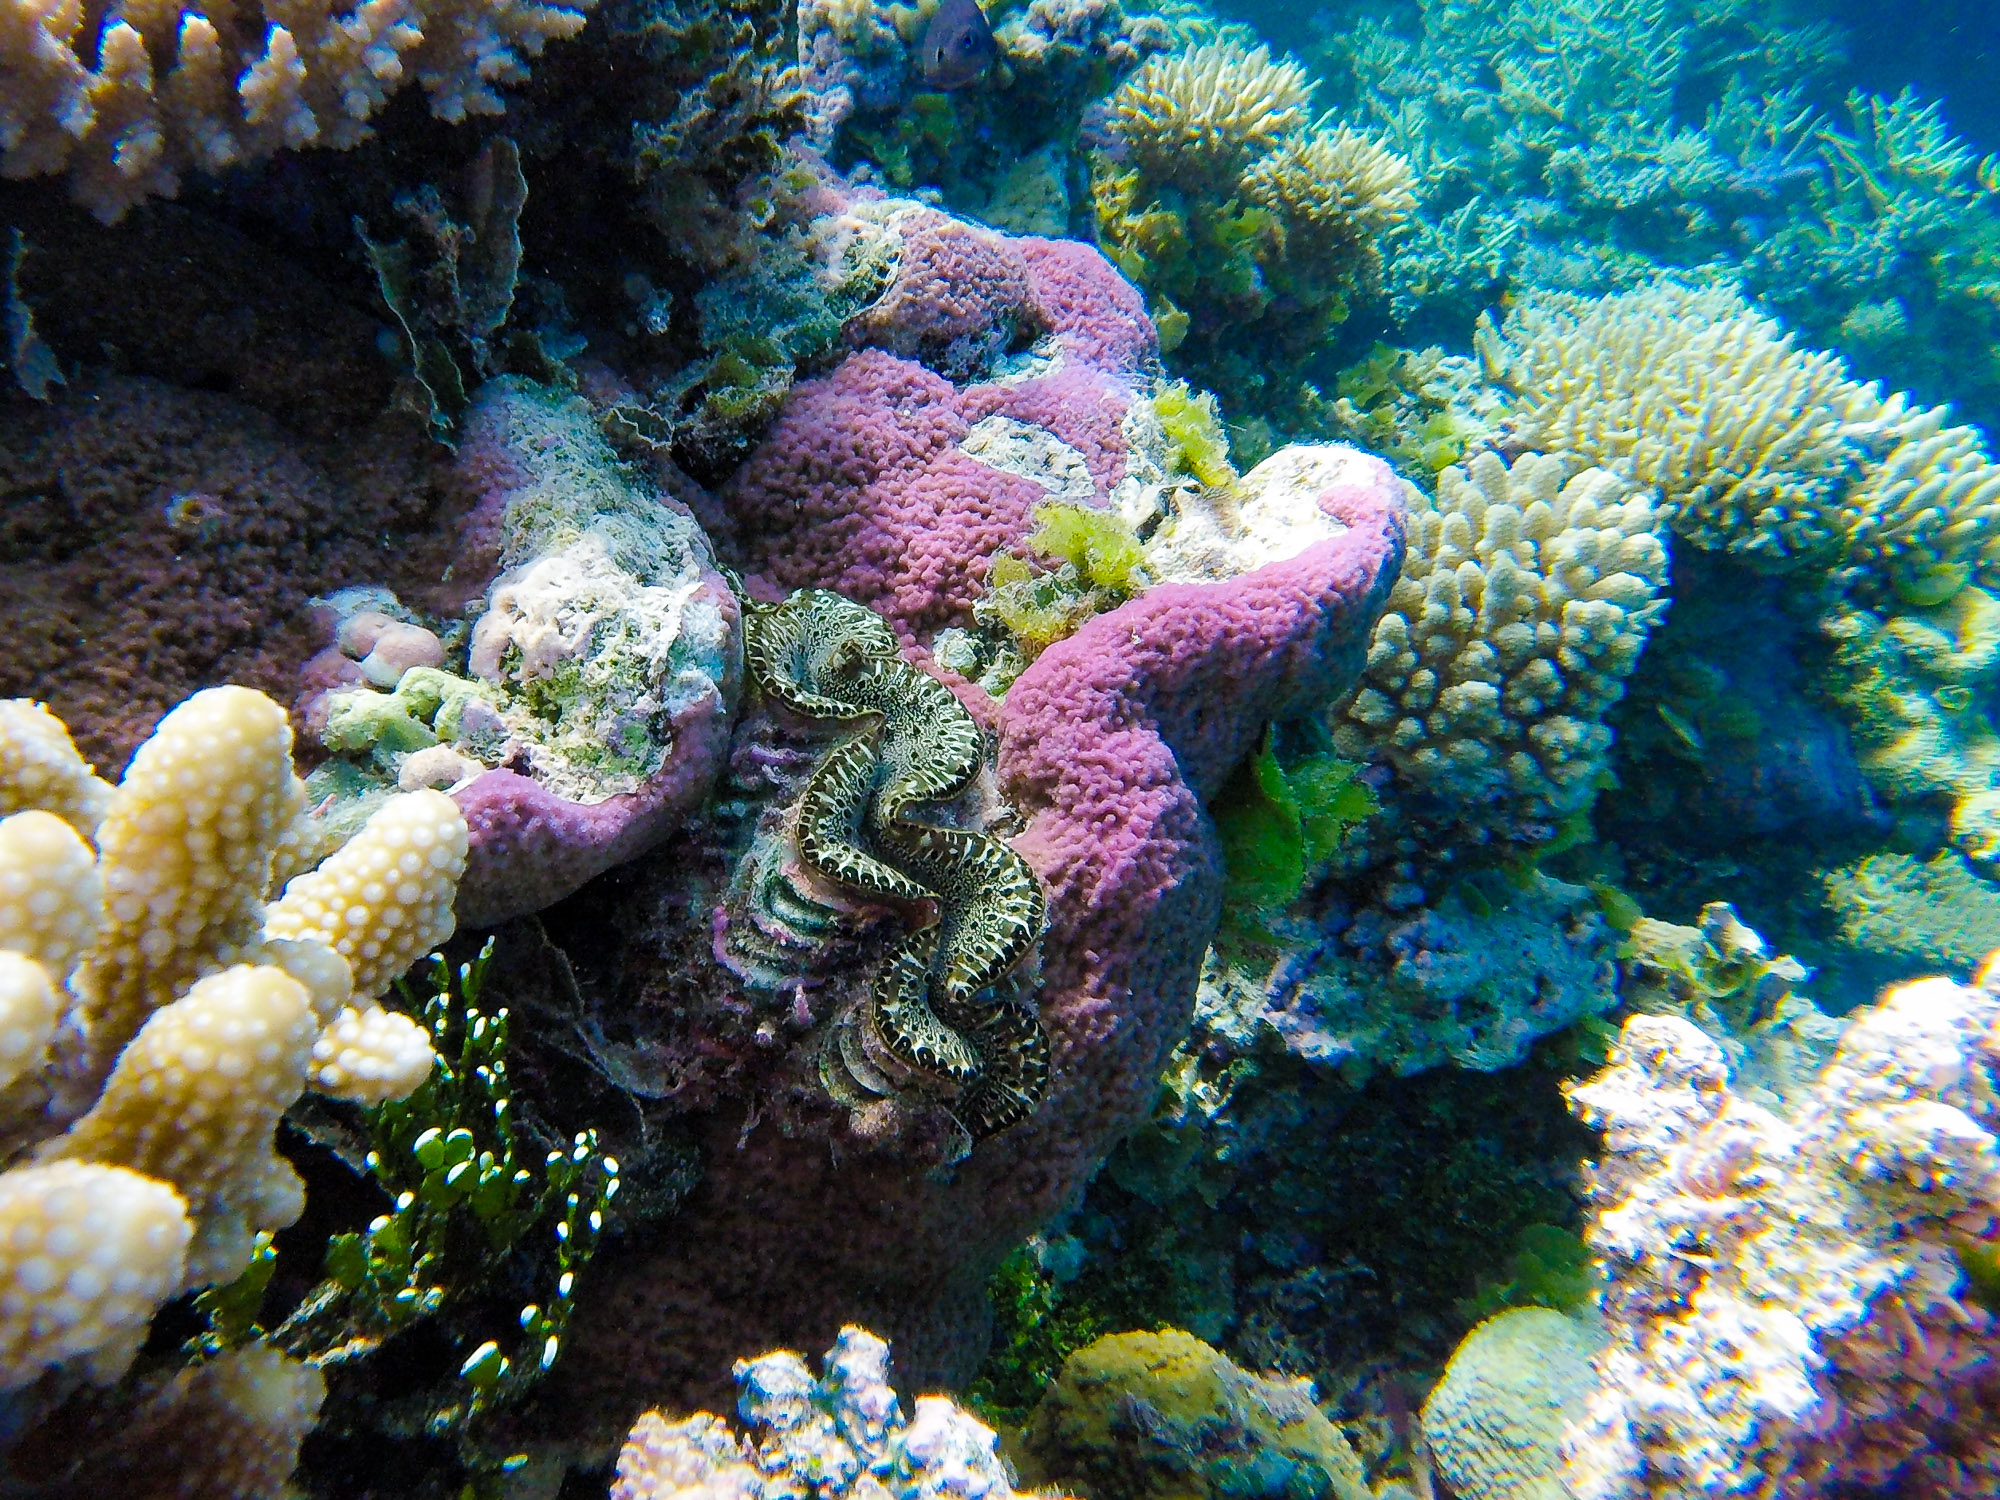 A giant clam, a common sight in the reefs of the Marshall Islands